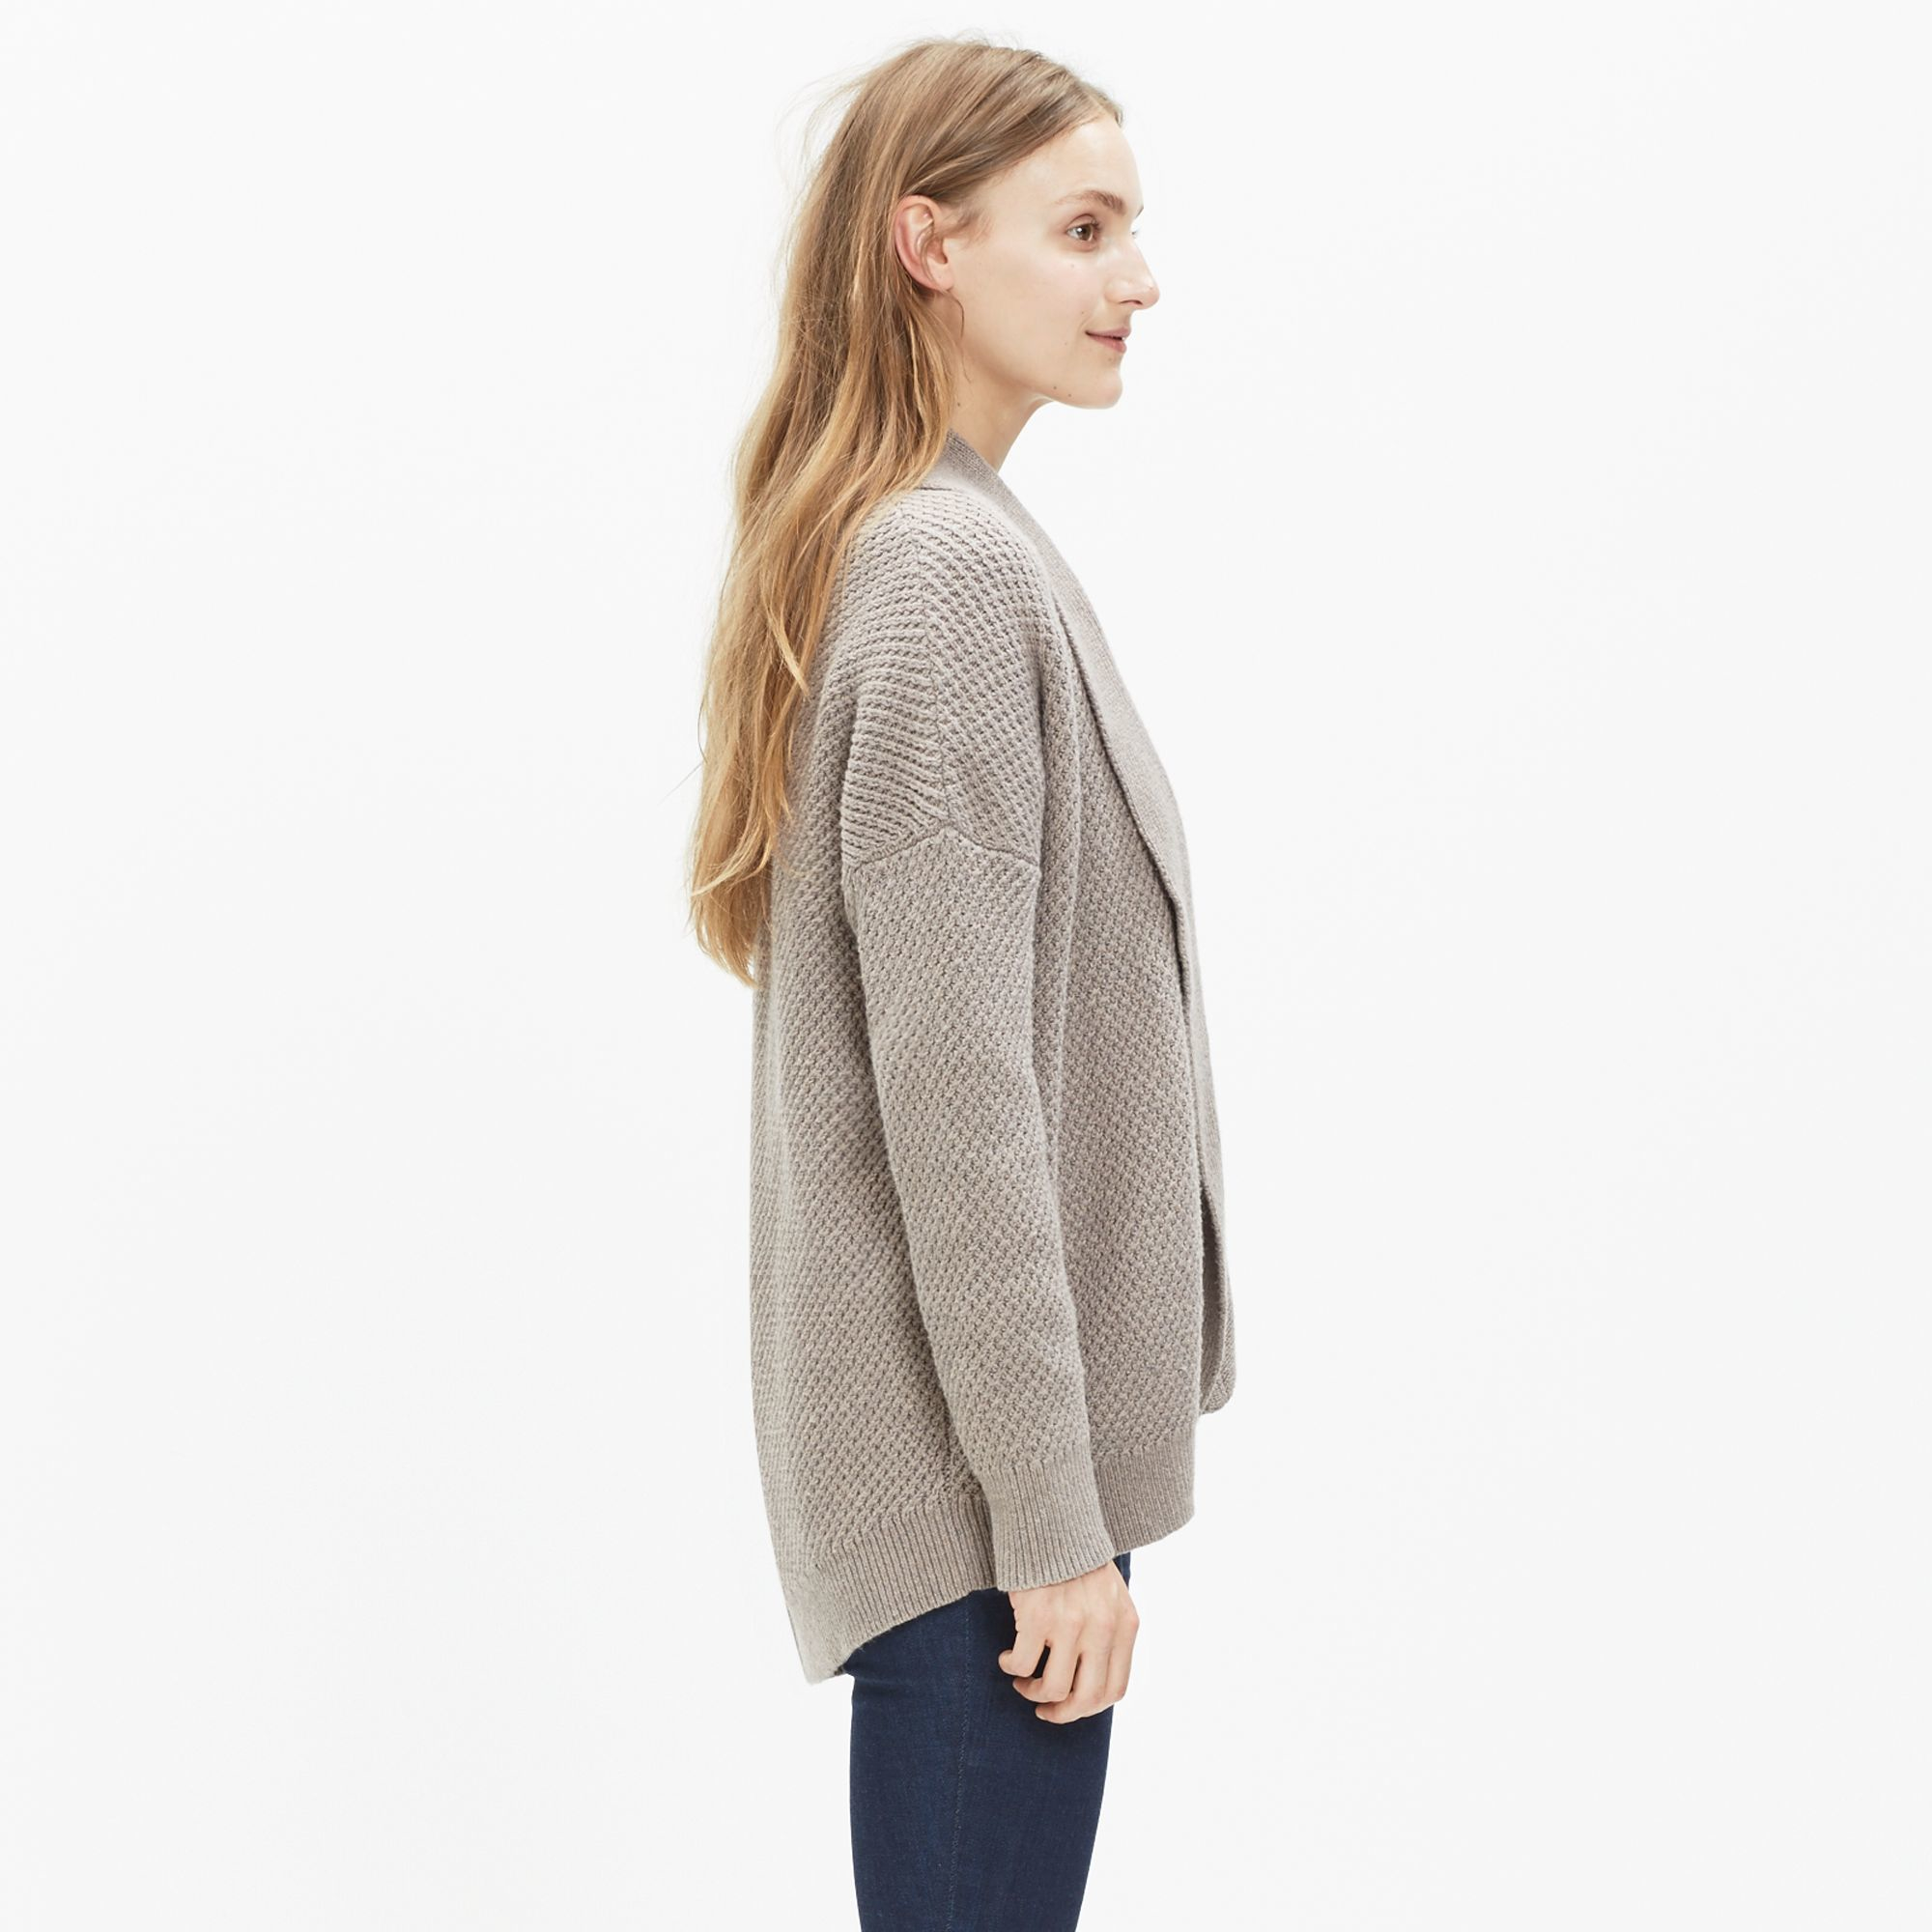 Madewell Cocoon Cardigan Sweater in Natural | Lyst